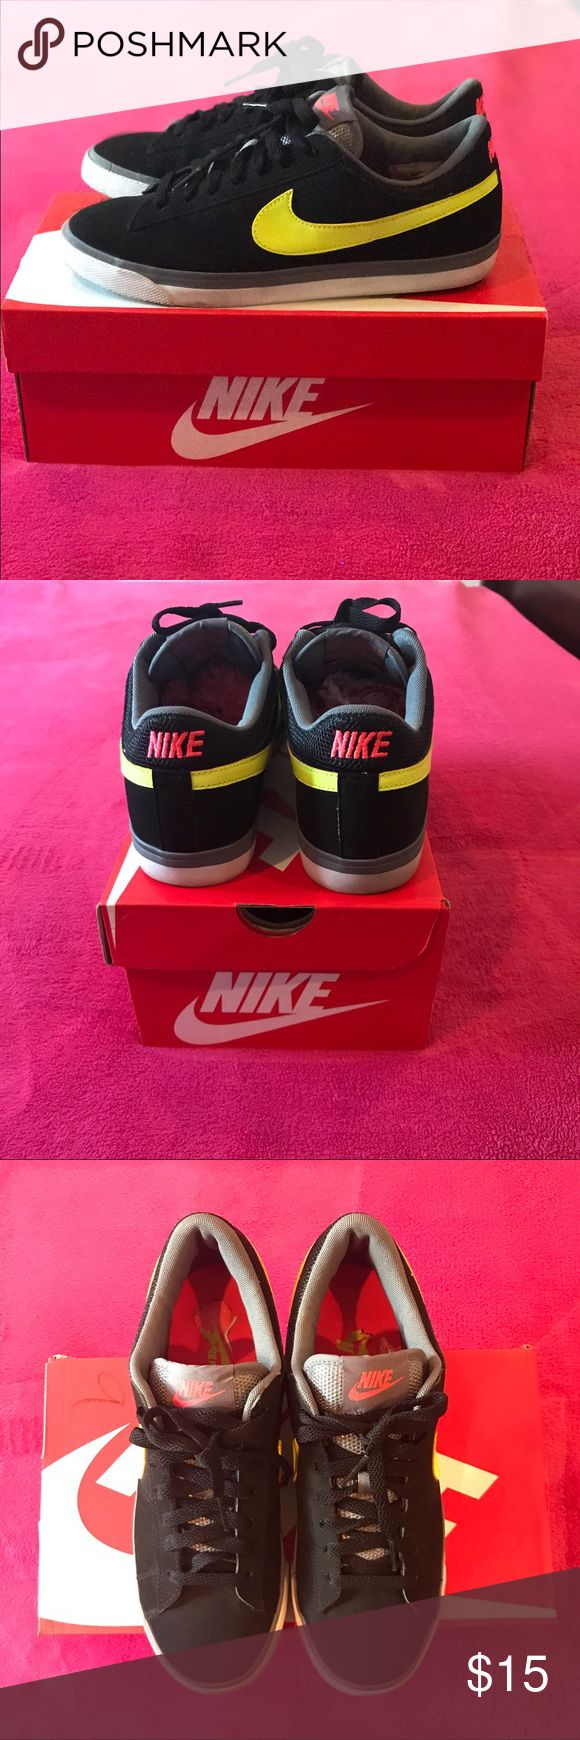 Nike Shoes Nike Shoes                                                                                                               Black, Gray, Pink & Neon Green | Size 8.5 in Women's | Willing to Negotiate | No Trades Nike Shoes Sneakers